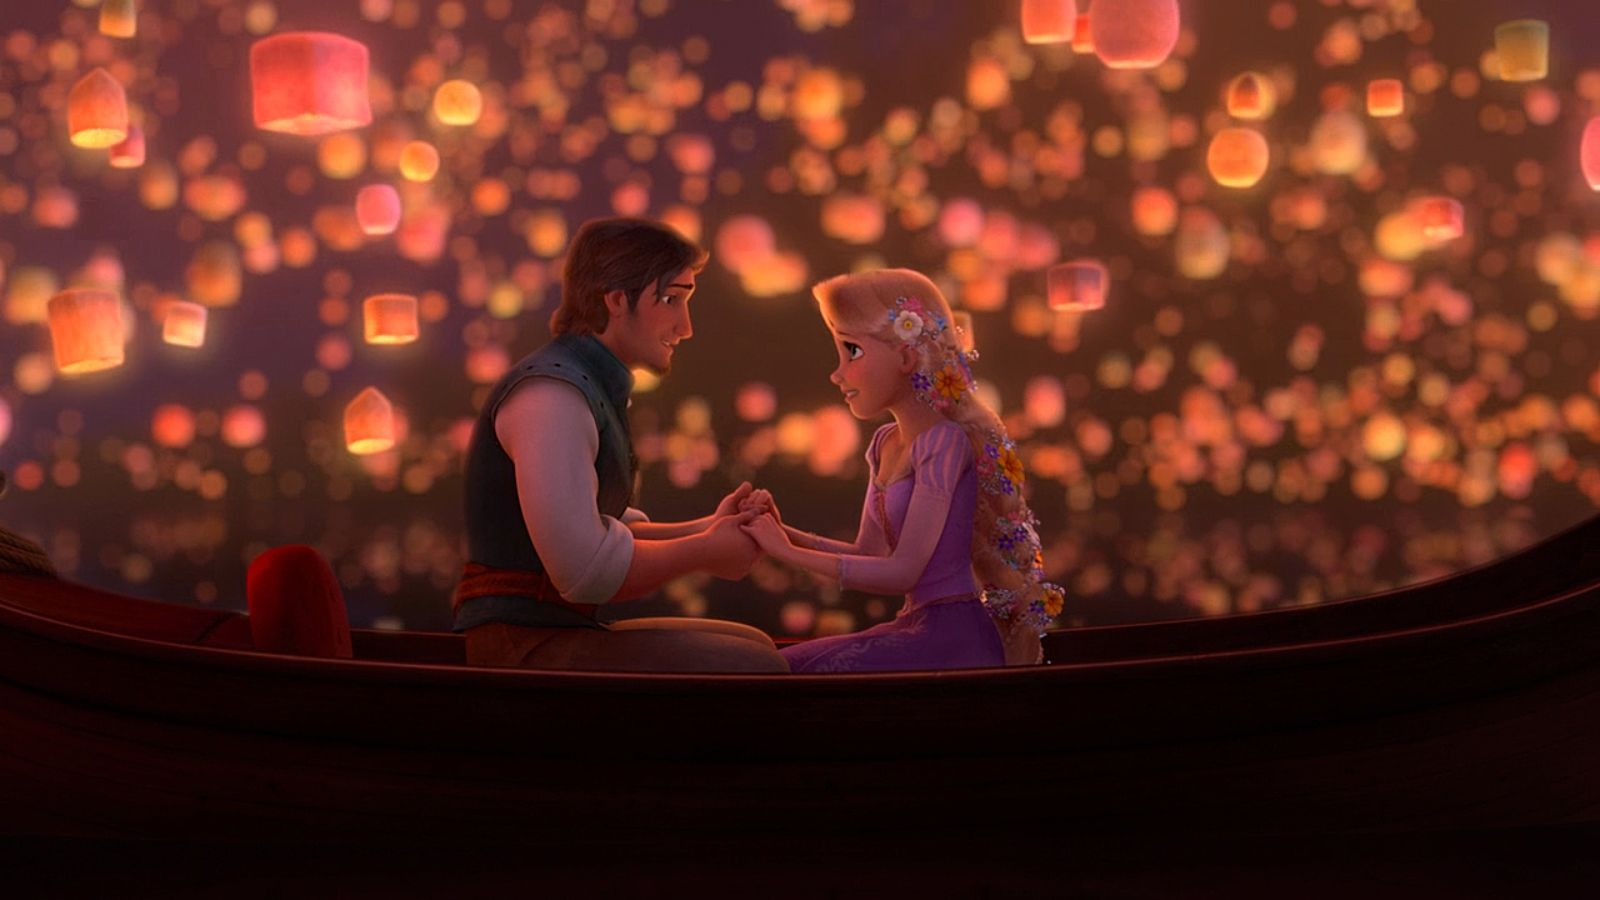 Tangled Wallpapers - Wallpaper Cave